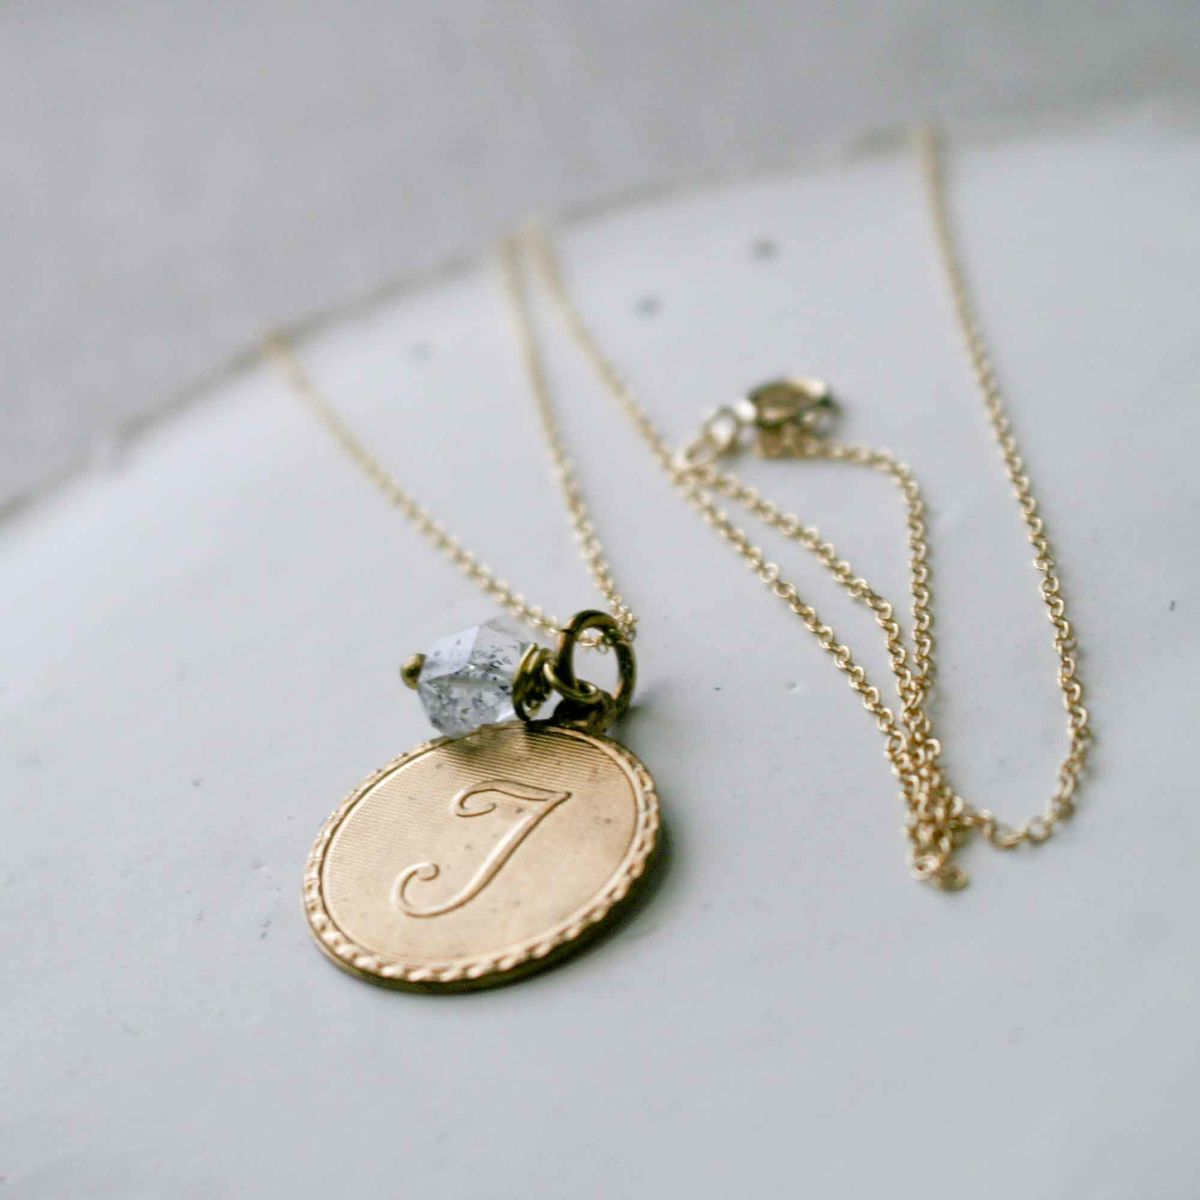 Uppercase Cursive Initial Monogram Letter Round Disc Charm Necklace - COMPLETE ALPHABET IS AVAILABLE - product images  of